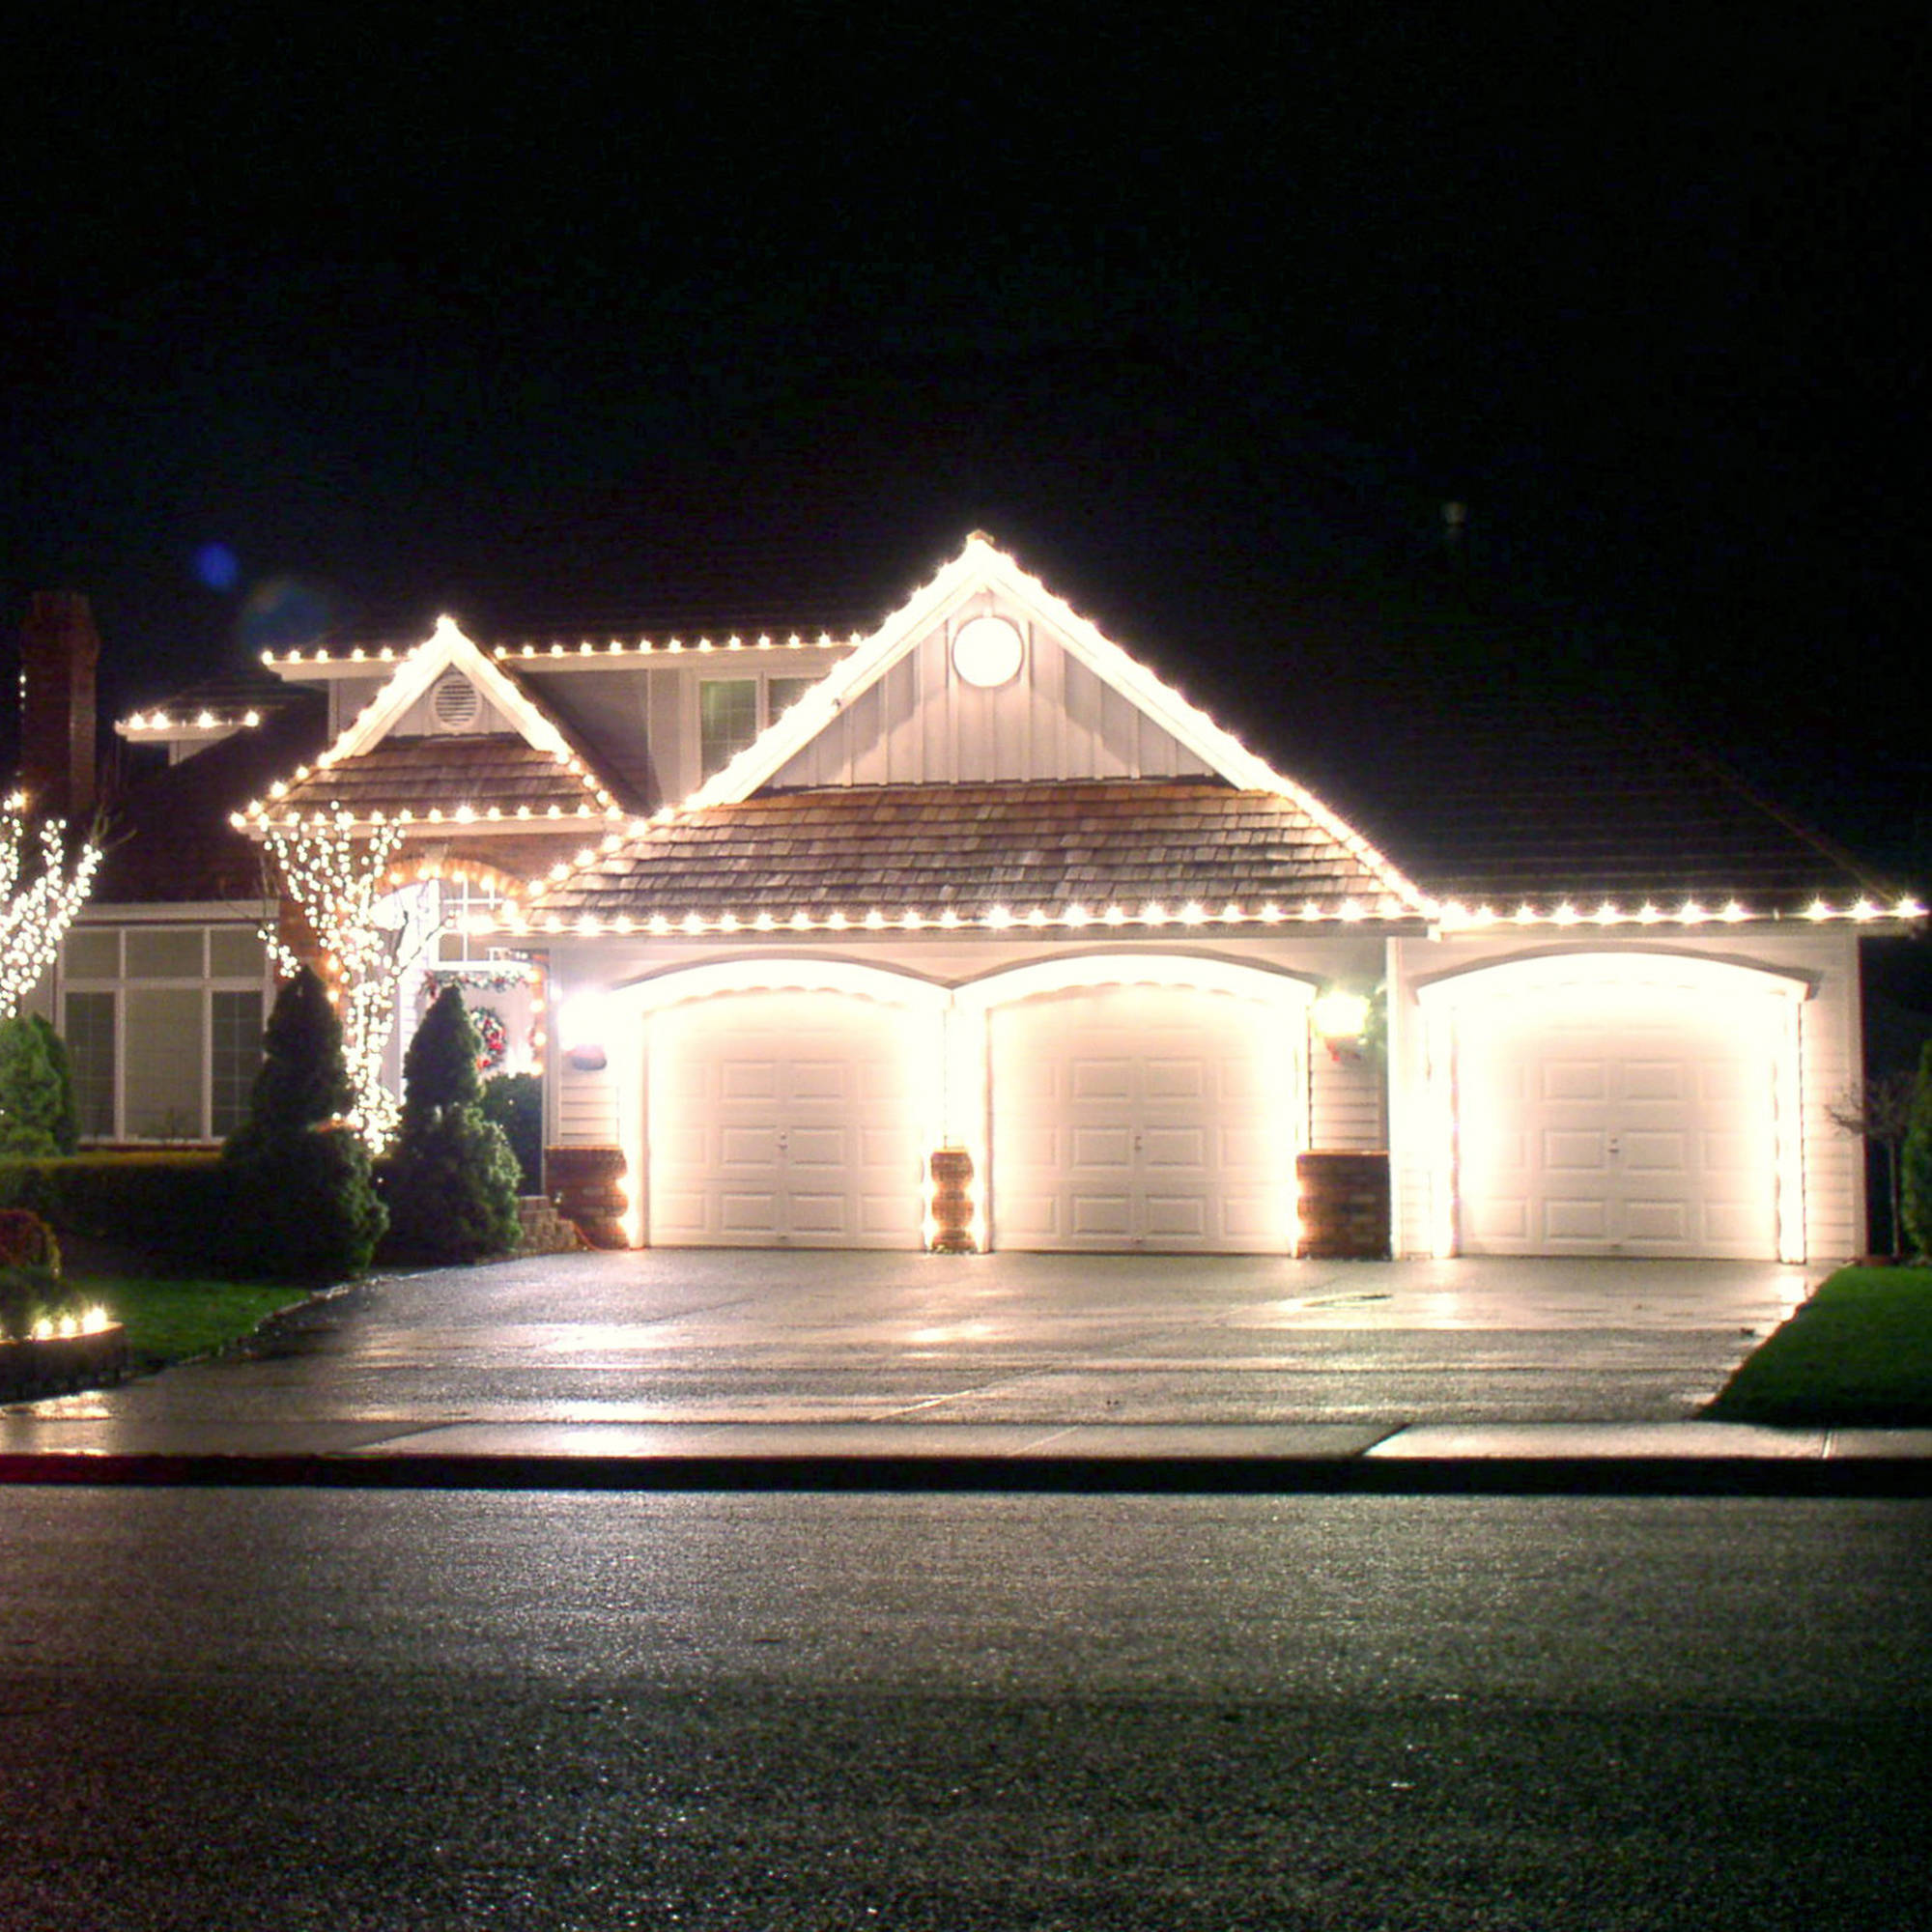 Pure Garden Solar LED String Lights, 39', 100 LED Lights - Walmart.com